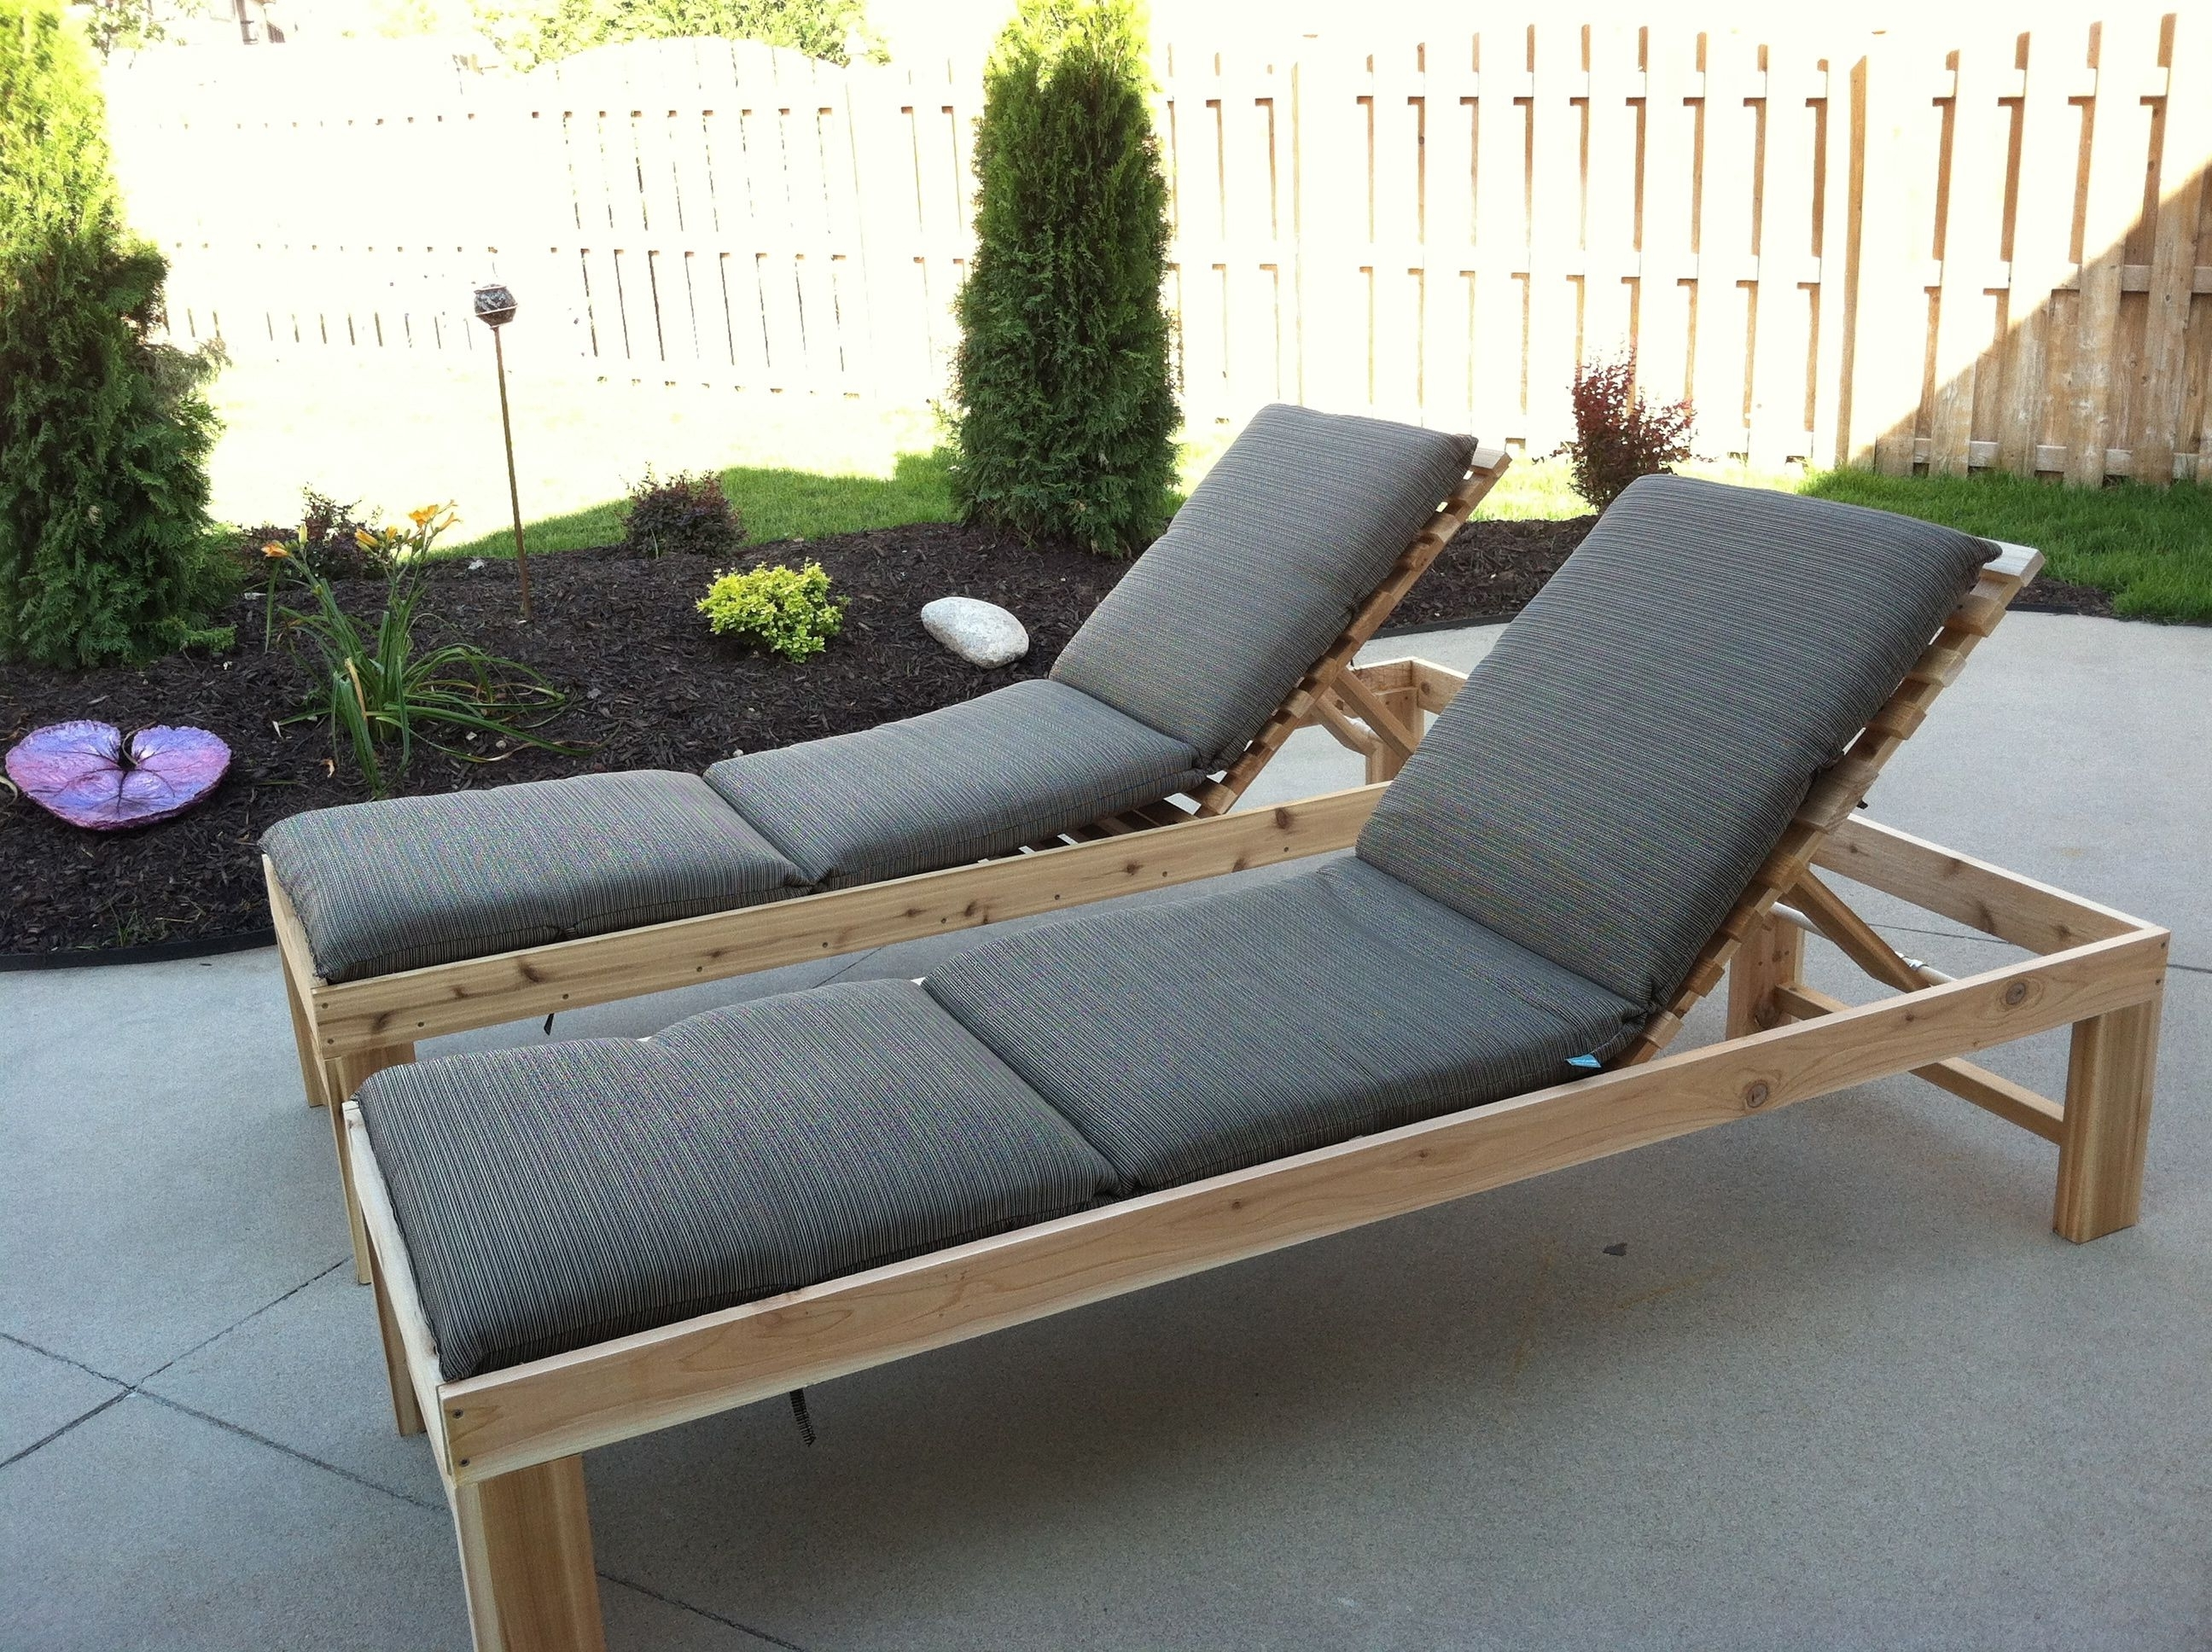 Outdoor Chaise Lounge – Diy Projects Regarding Wood Outdoor Chaise Lounges (View 7 of 15)